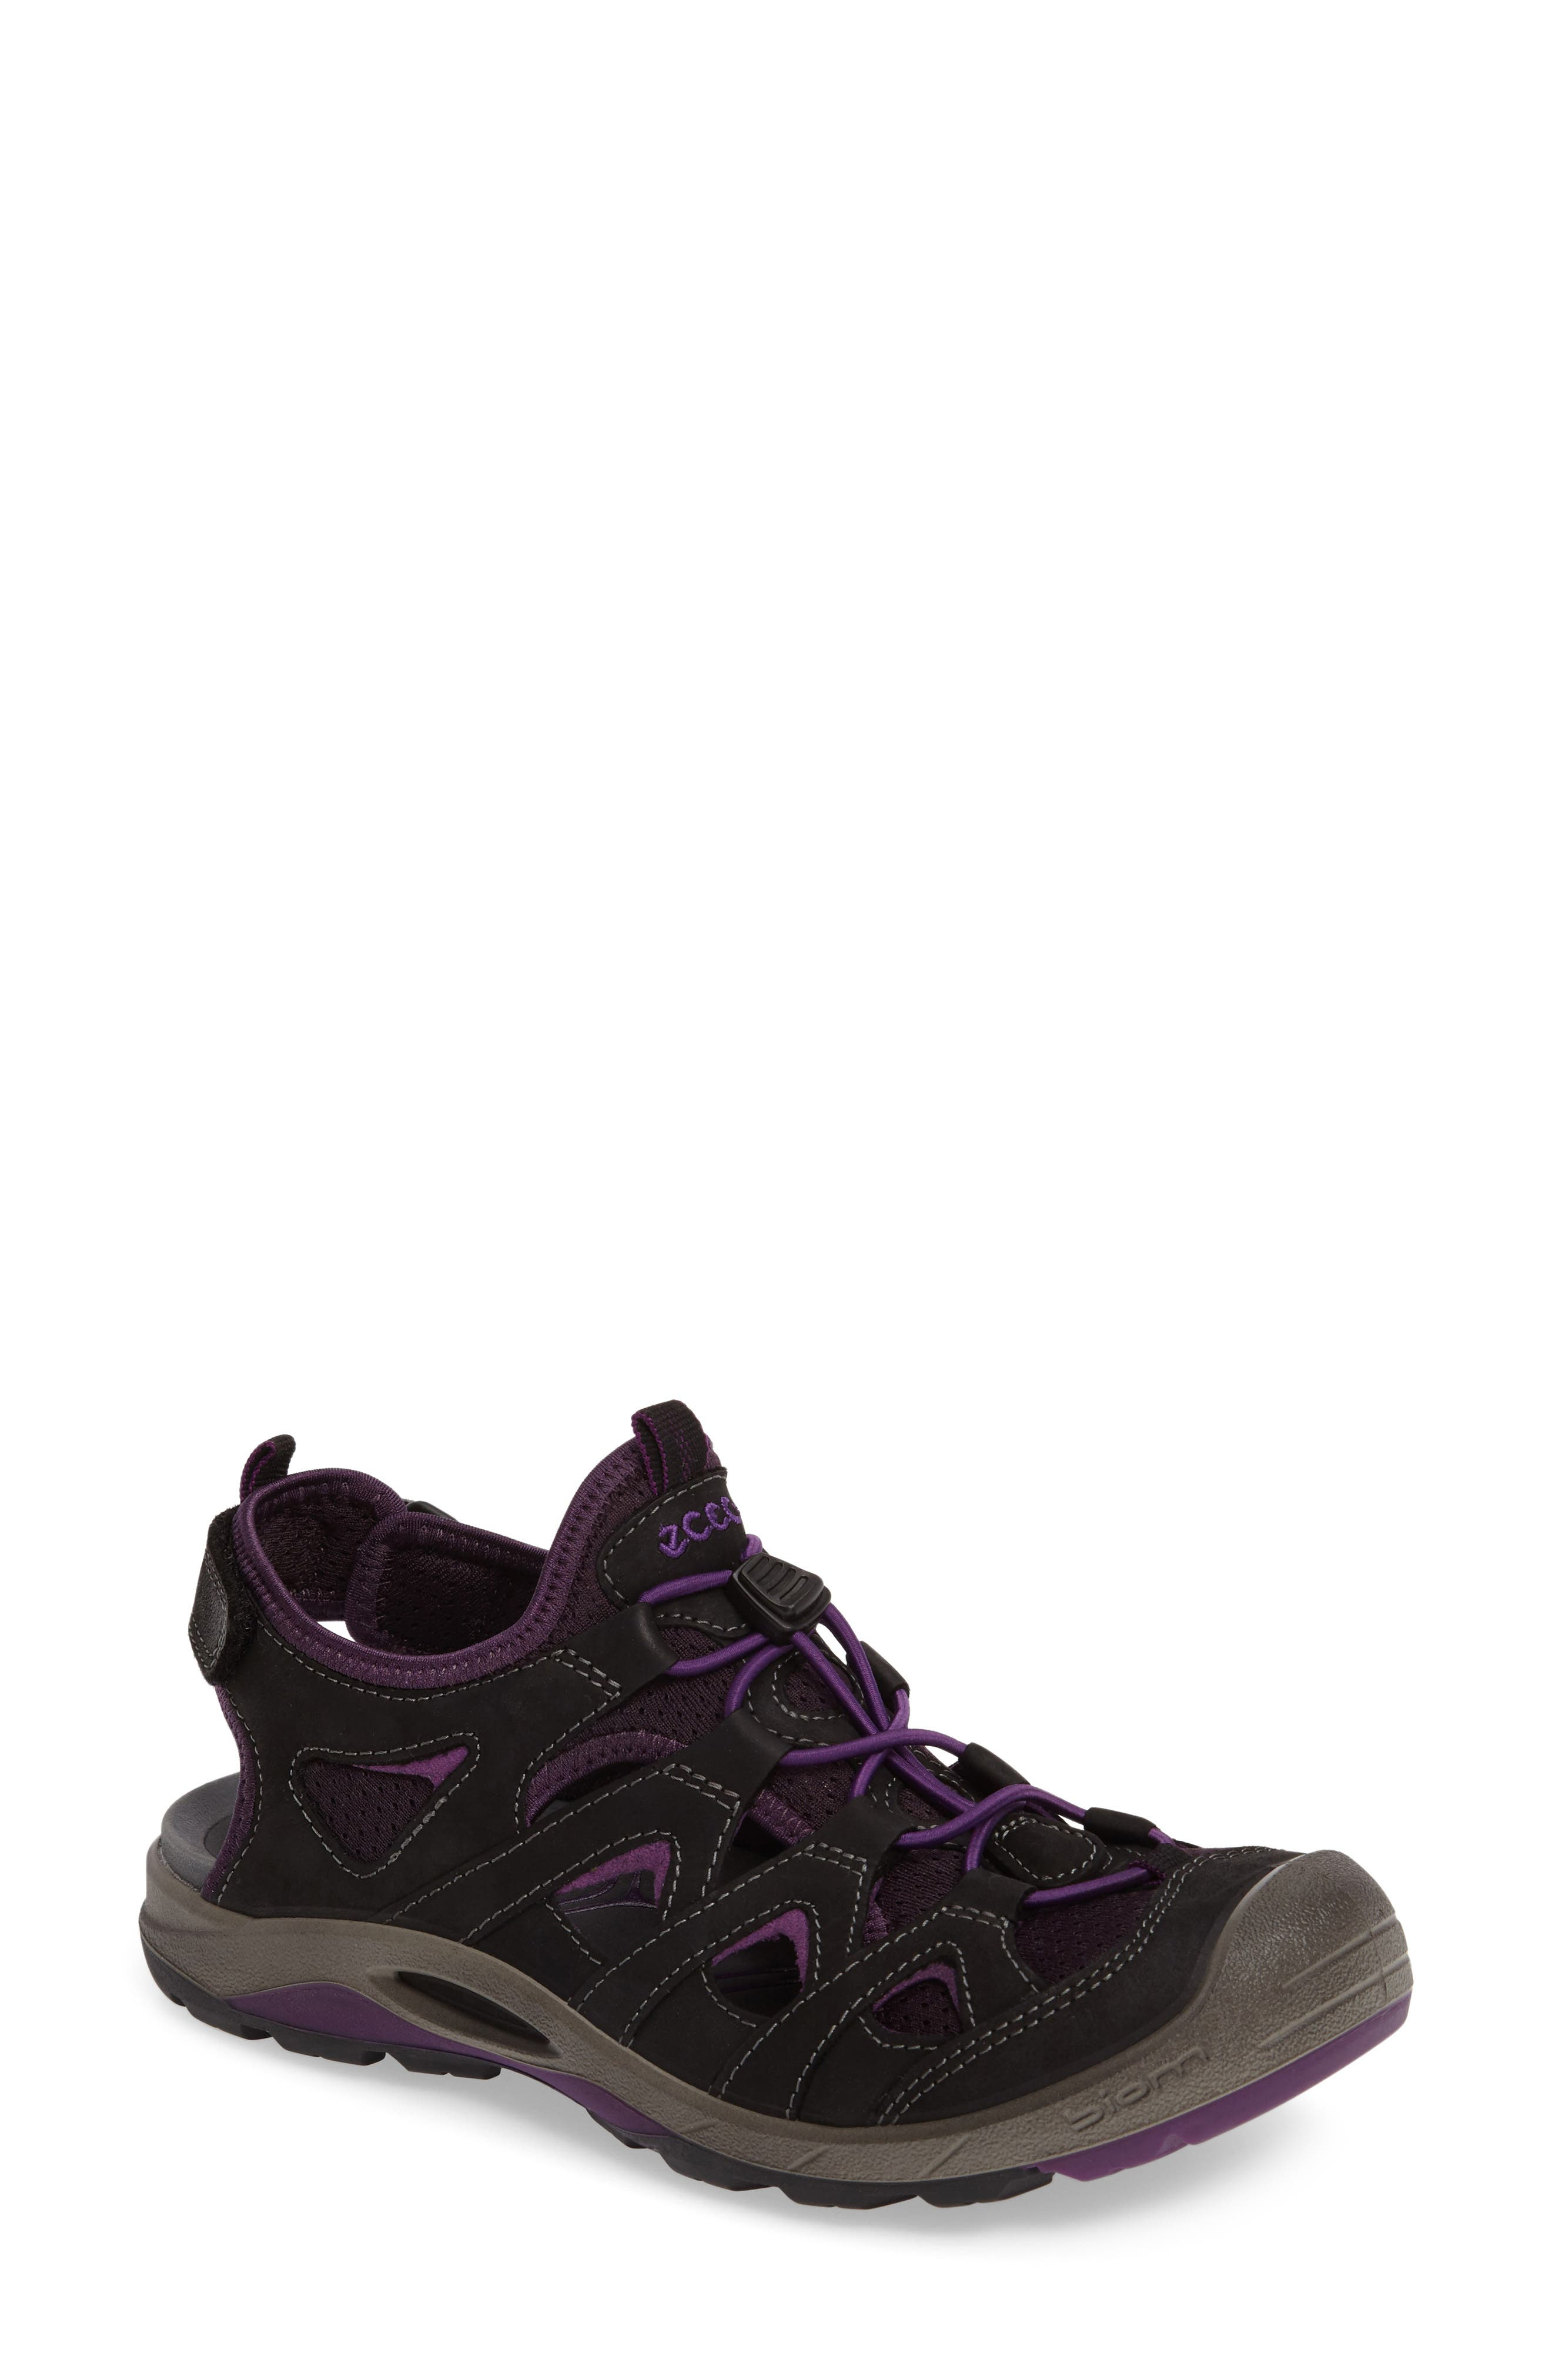 'Biom Delta Offroad' Sneaker,                             Main thumbnail 1, color,                             Black/ Imperial Purple Leather